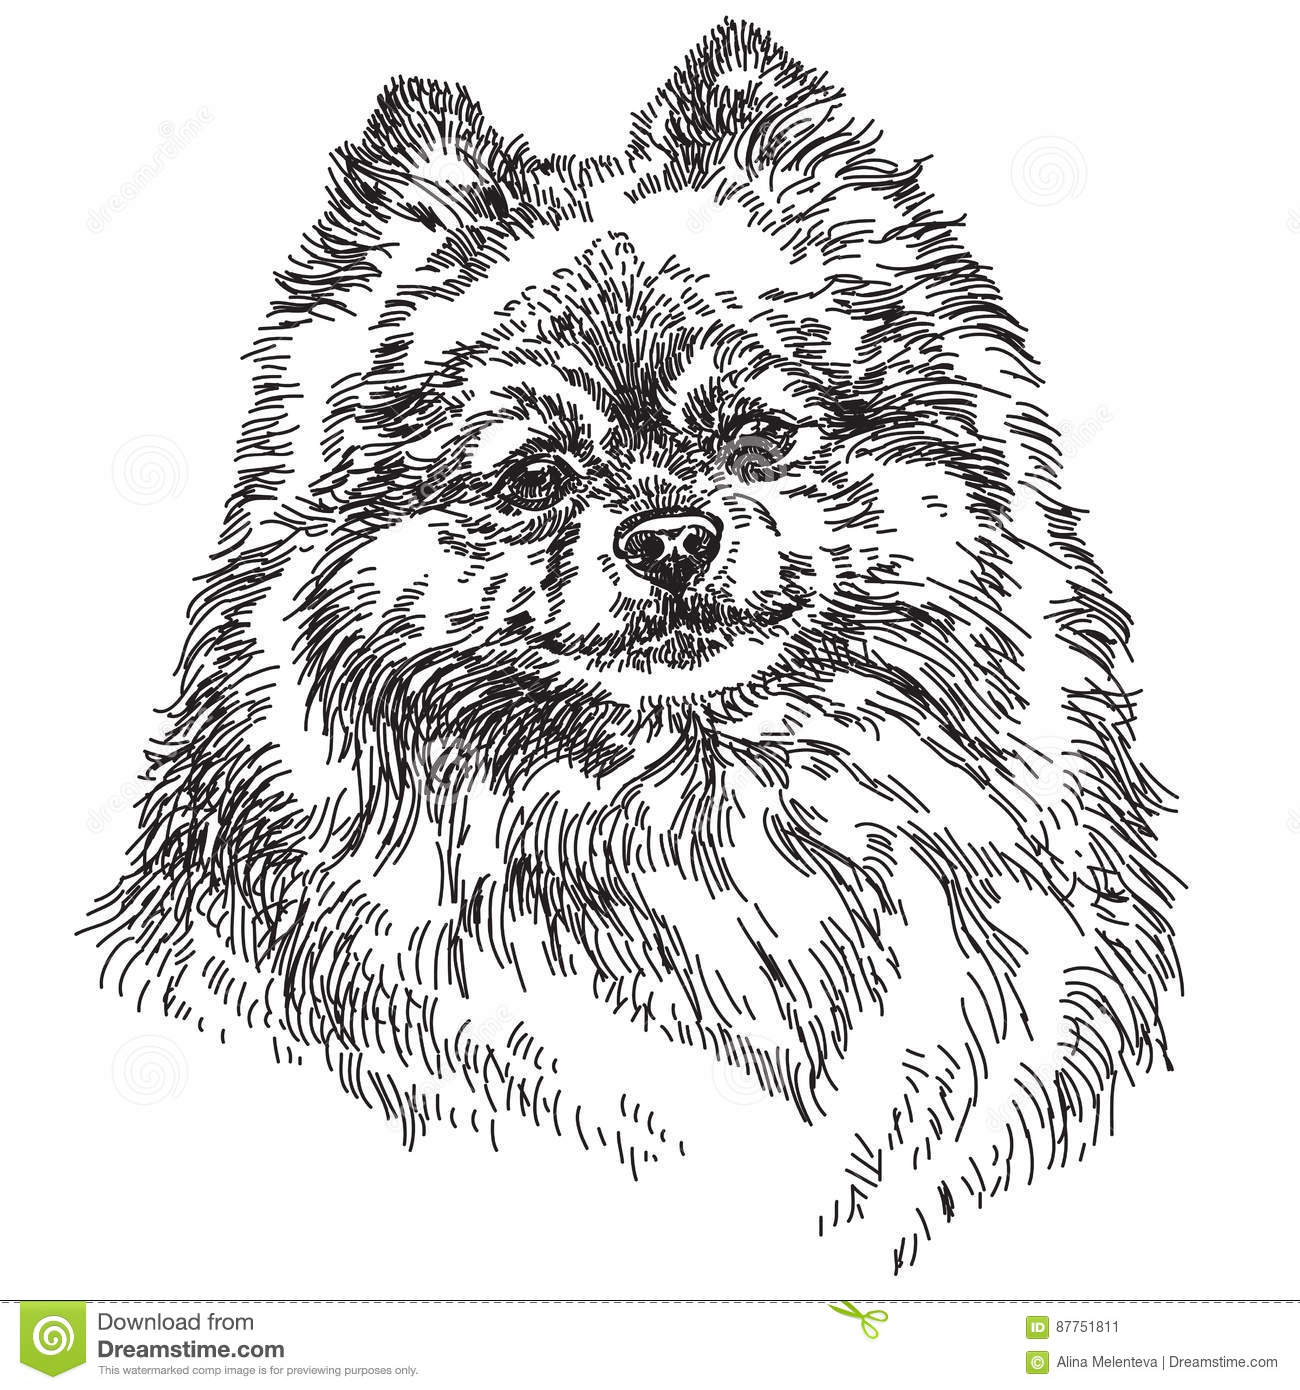 pomeranian vector pomeranian cartoons illustrations vector stock images 625